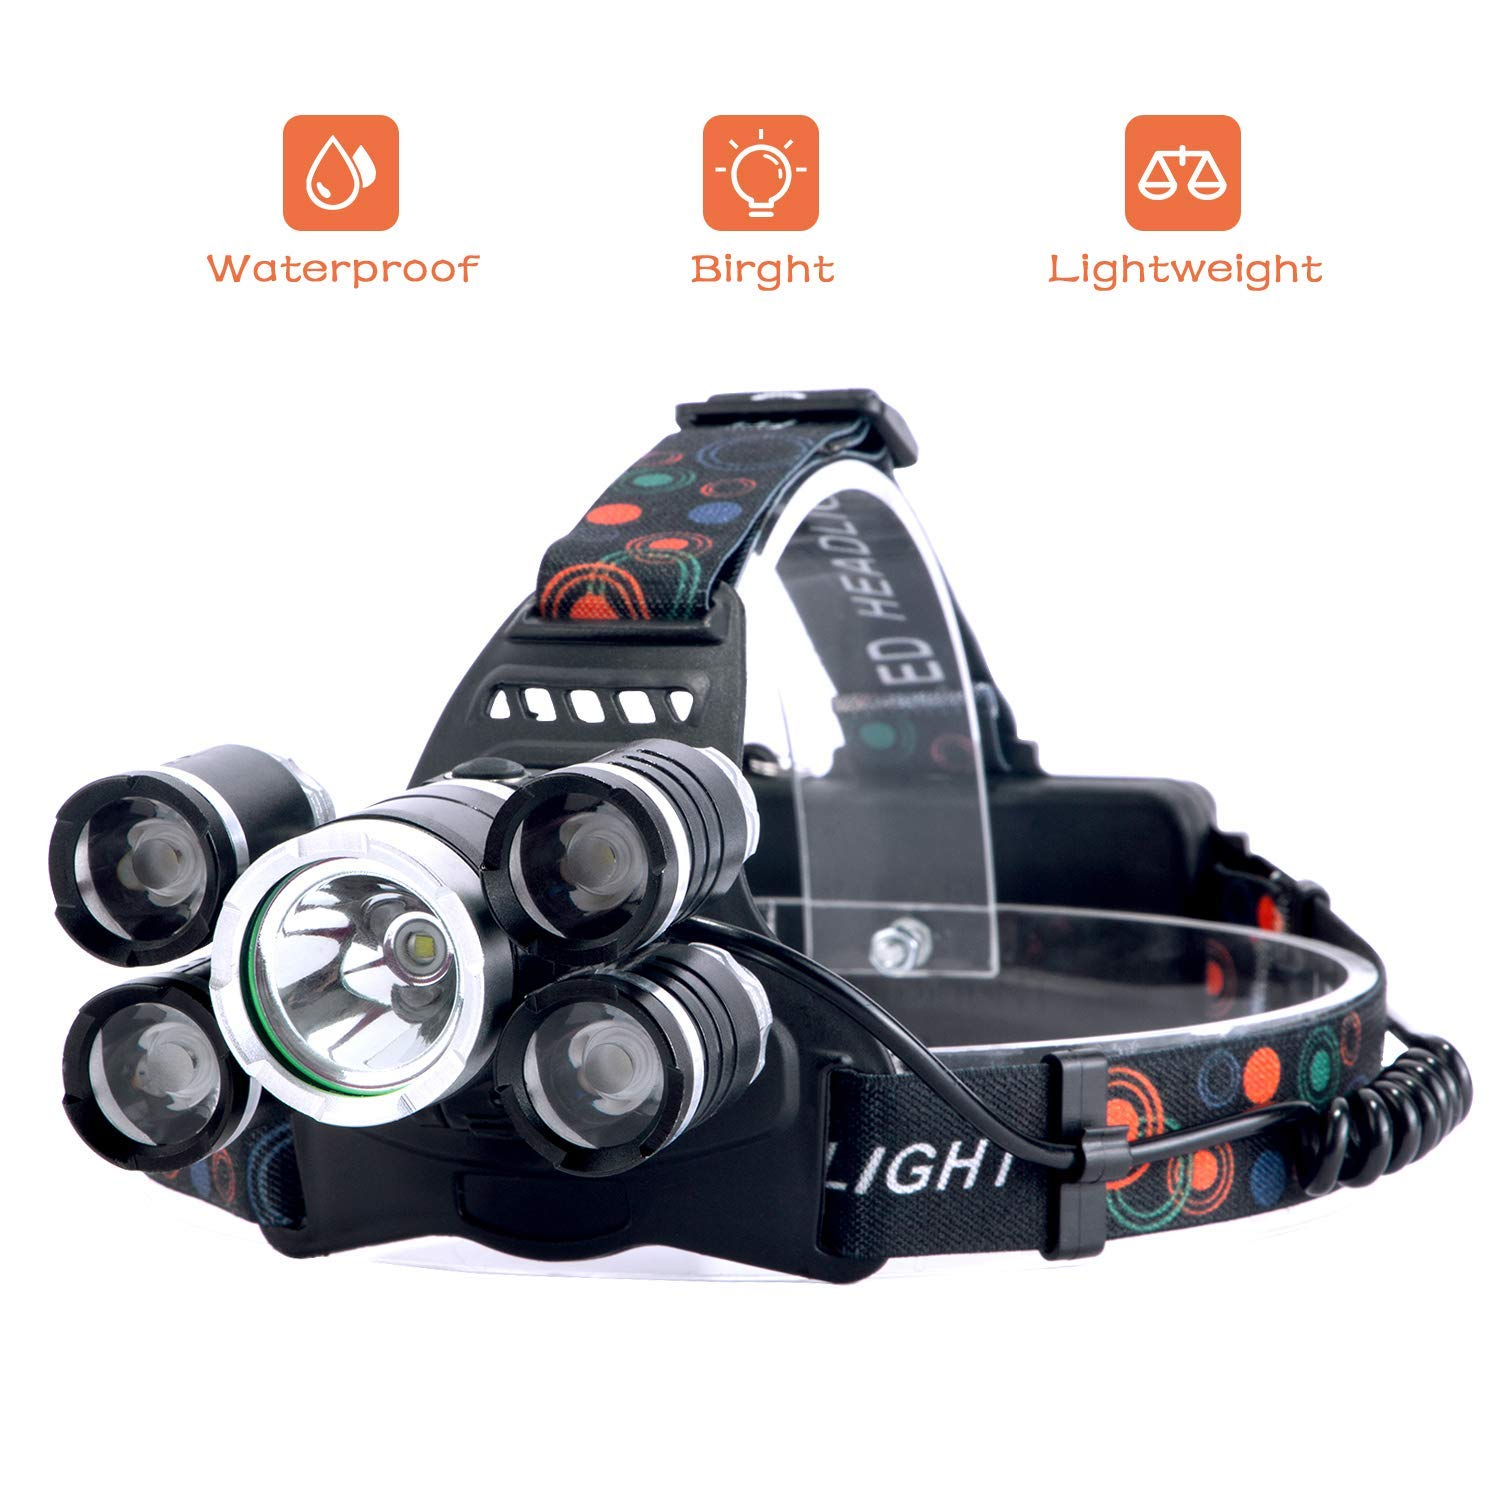 Headlamp Rechargeable, LED Headlight 4 Modes, LED Work Headlight Waterproof, Head Torch with Rechargeable Batteries, Brightest 10000 Lumen Headlight Flashlight for Camping, Running, Hiking, Fishing